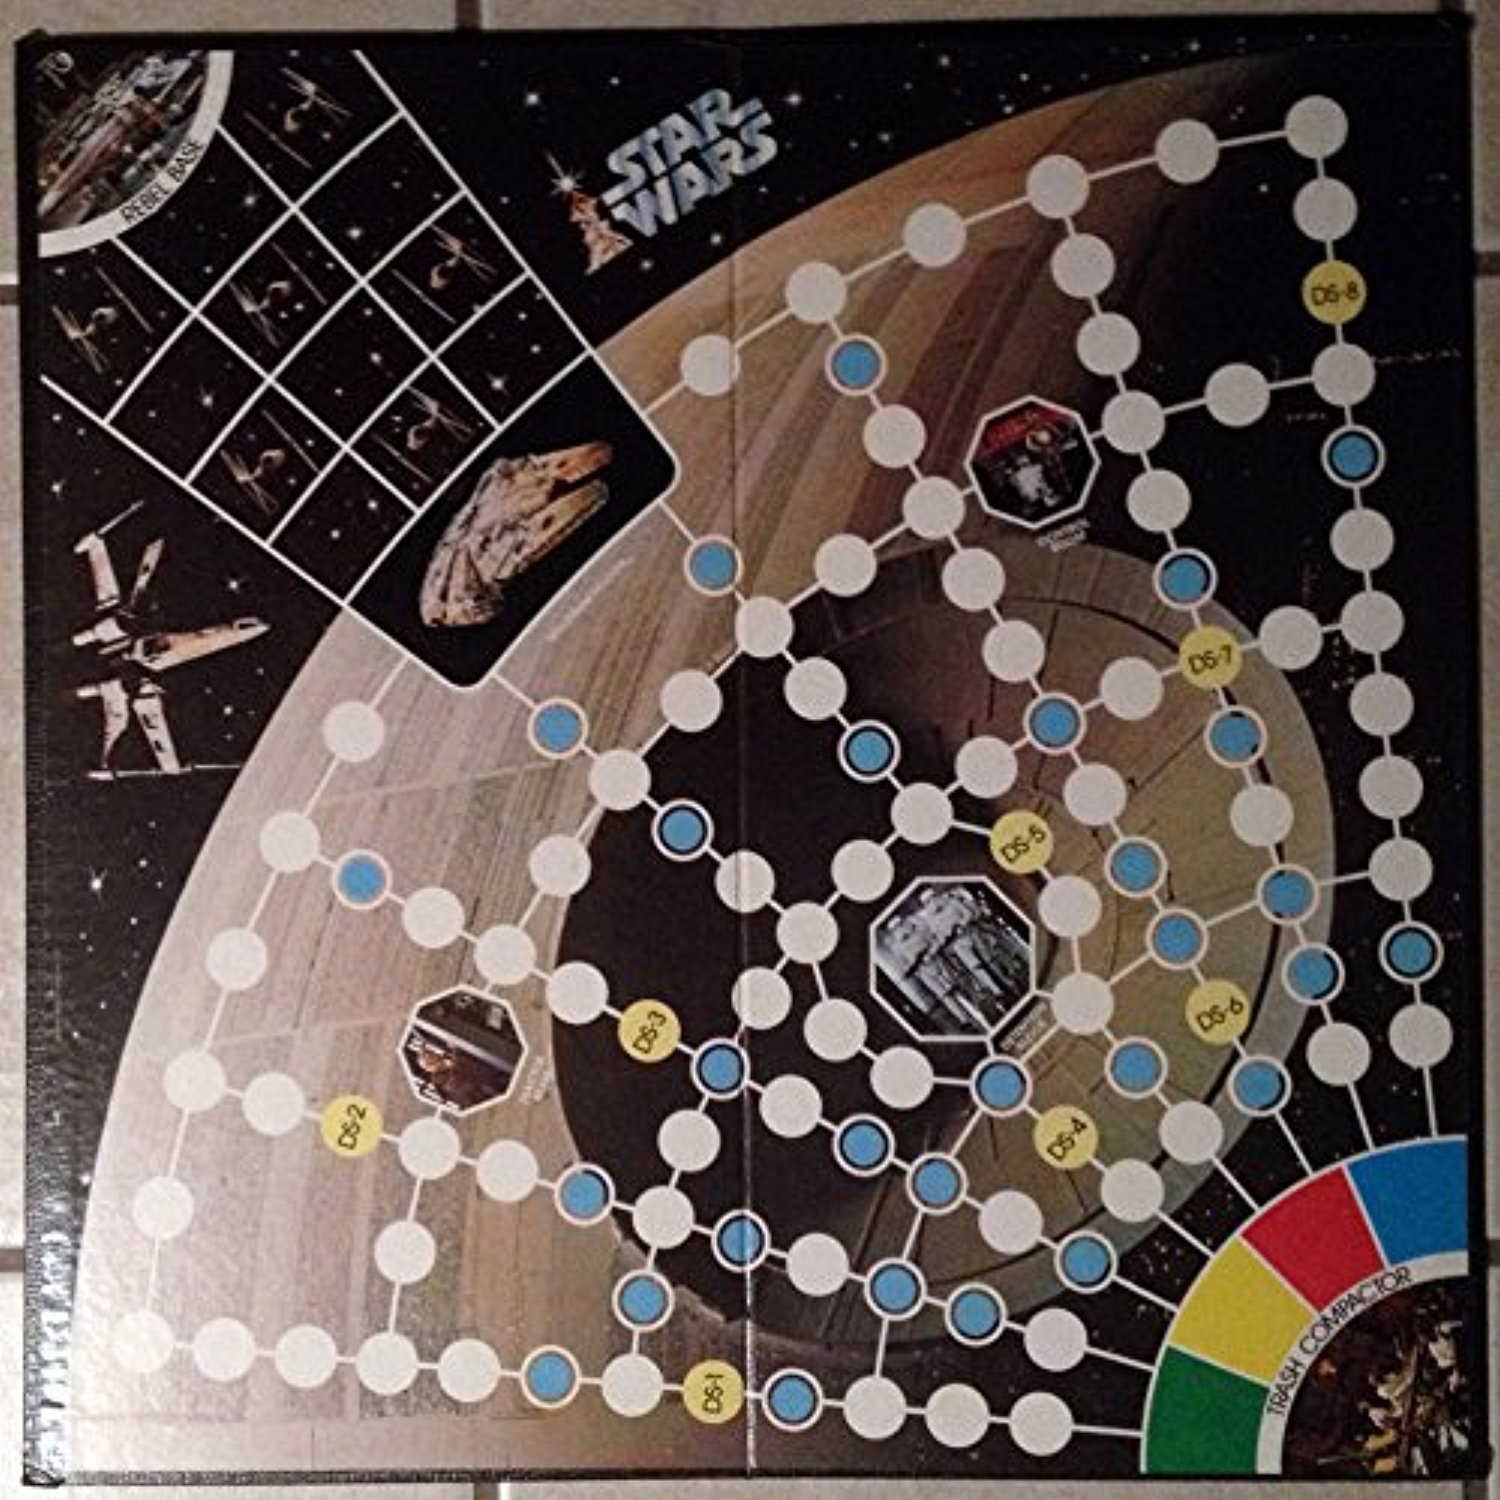 Star Wars Escape From Death Star 1977 Board Game